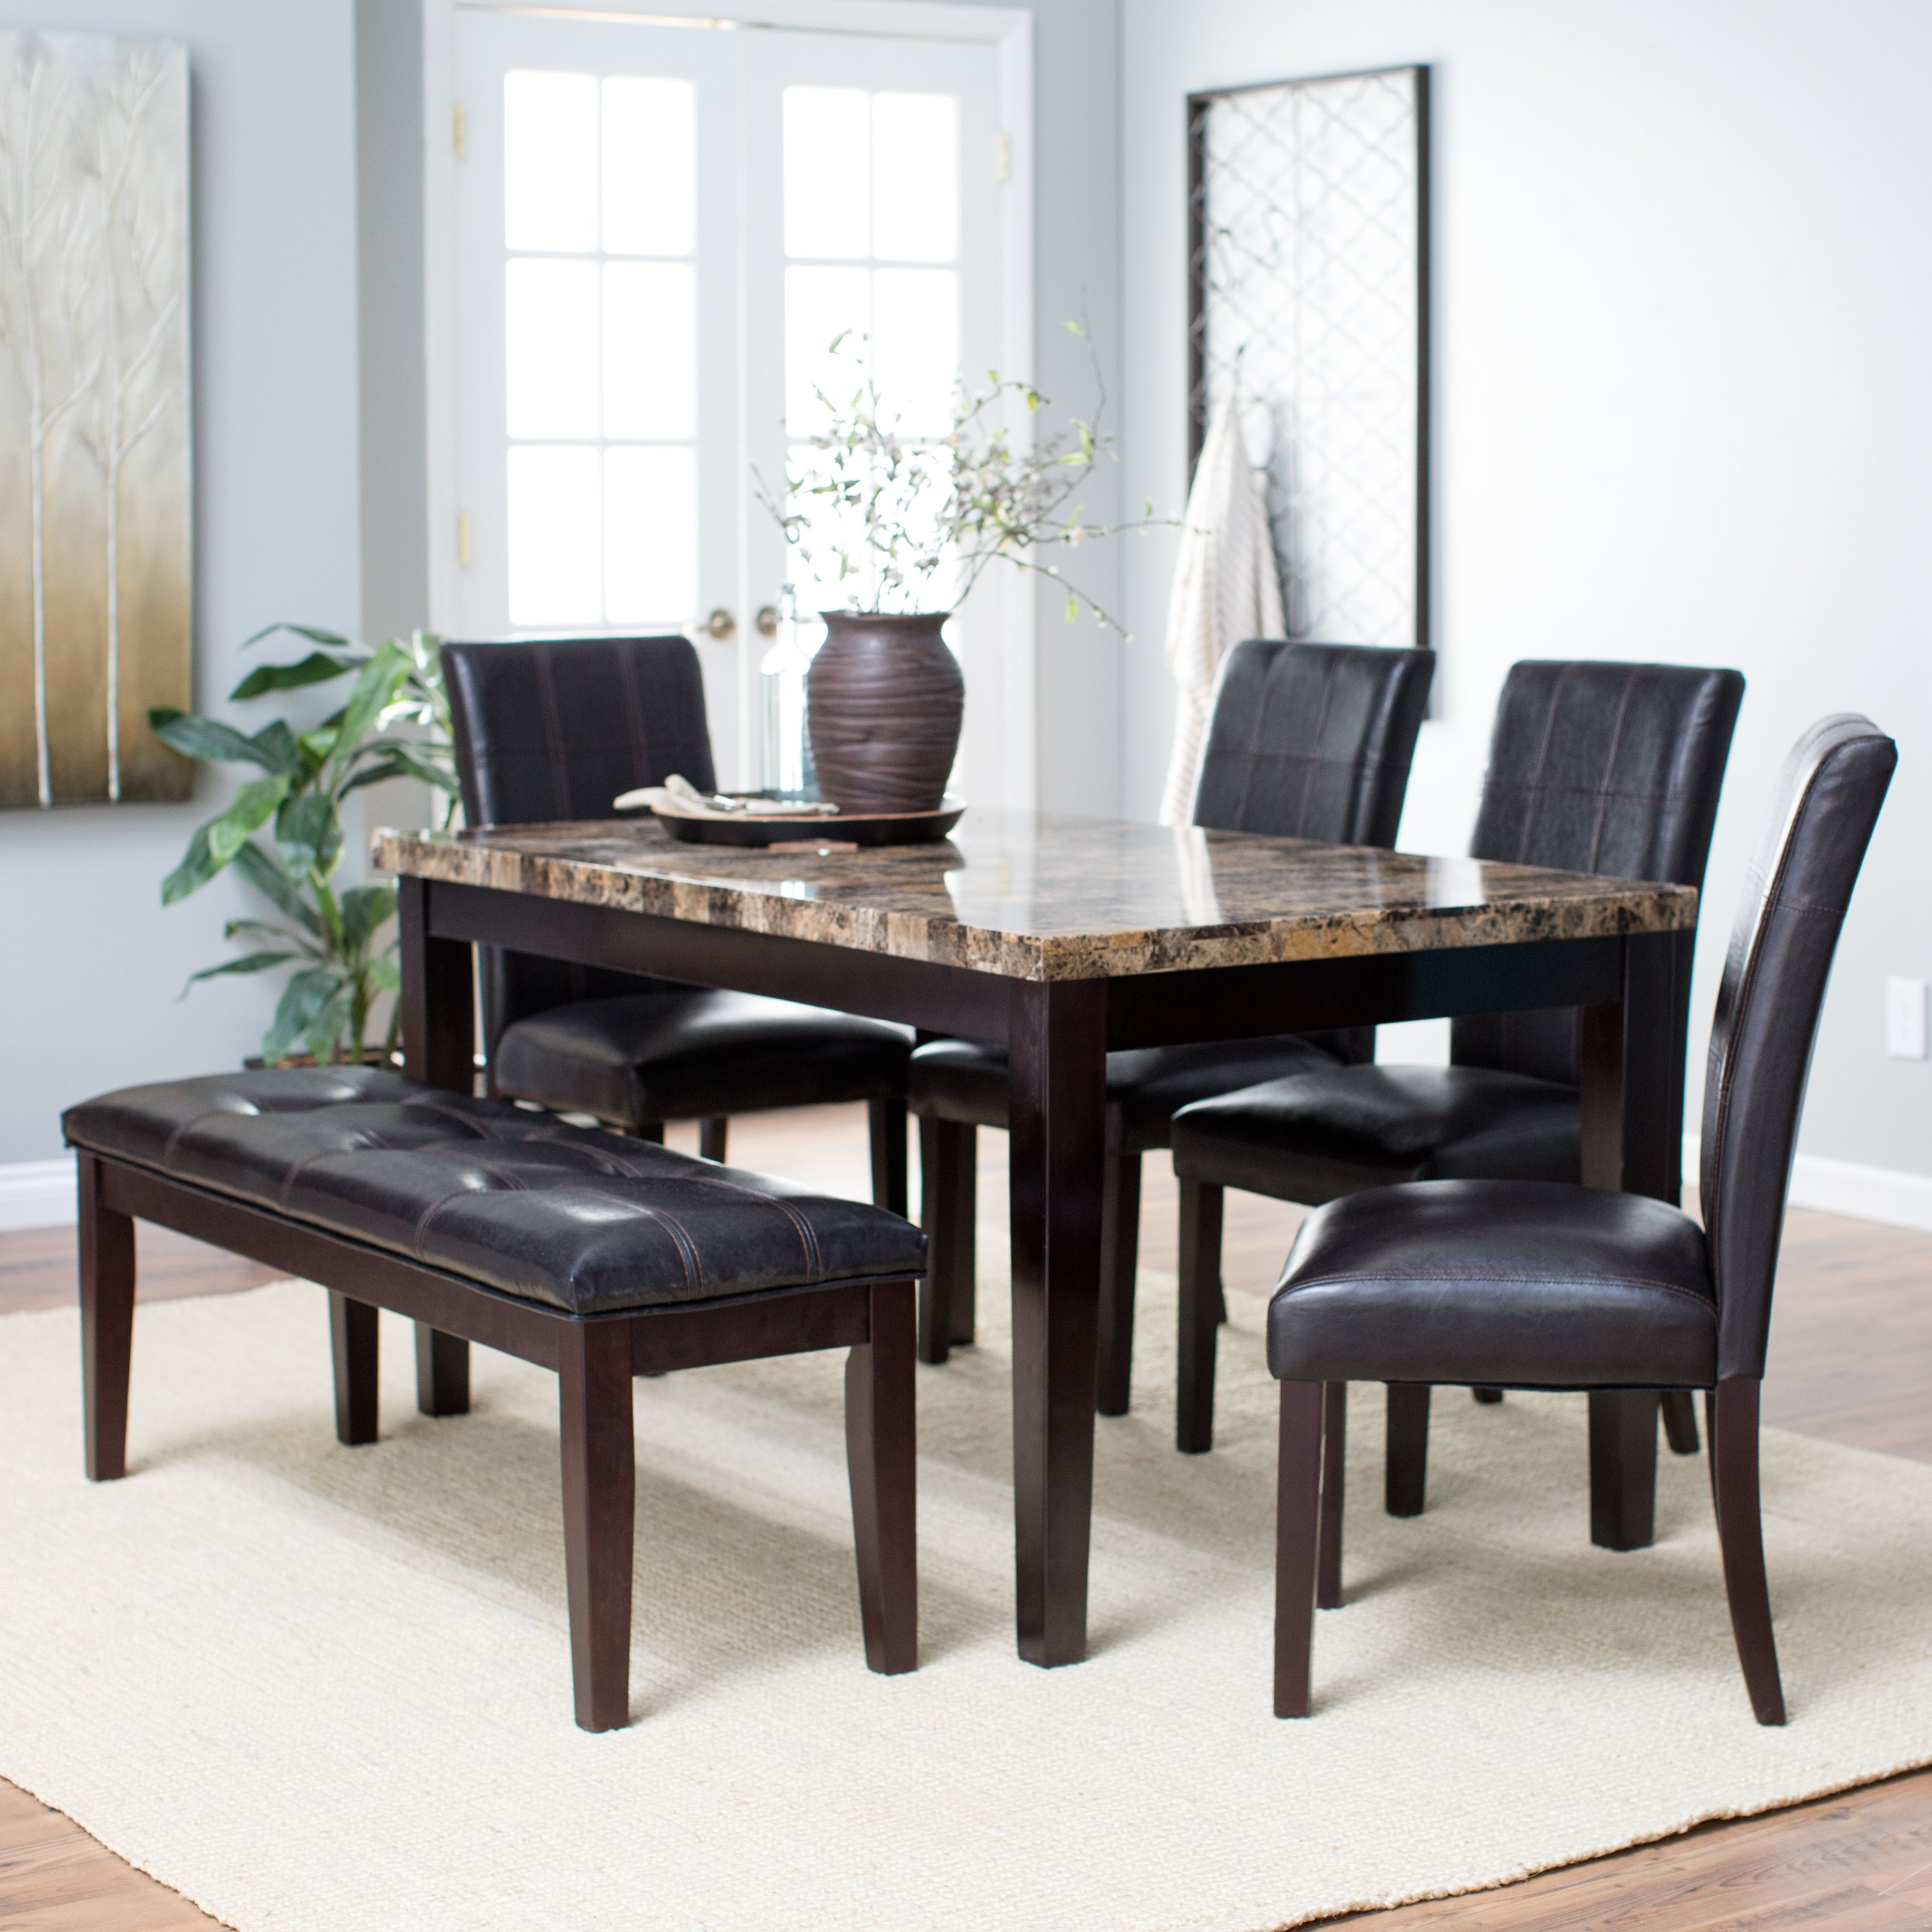 Types of dining table sets